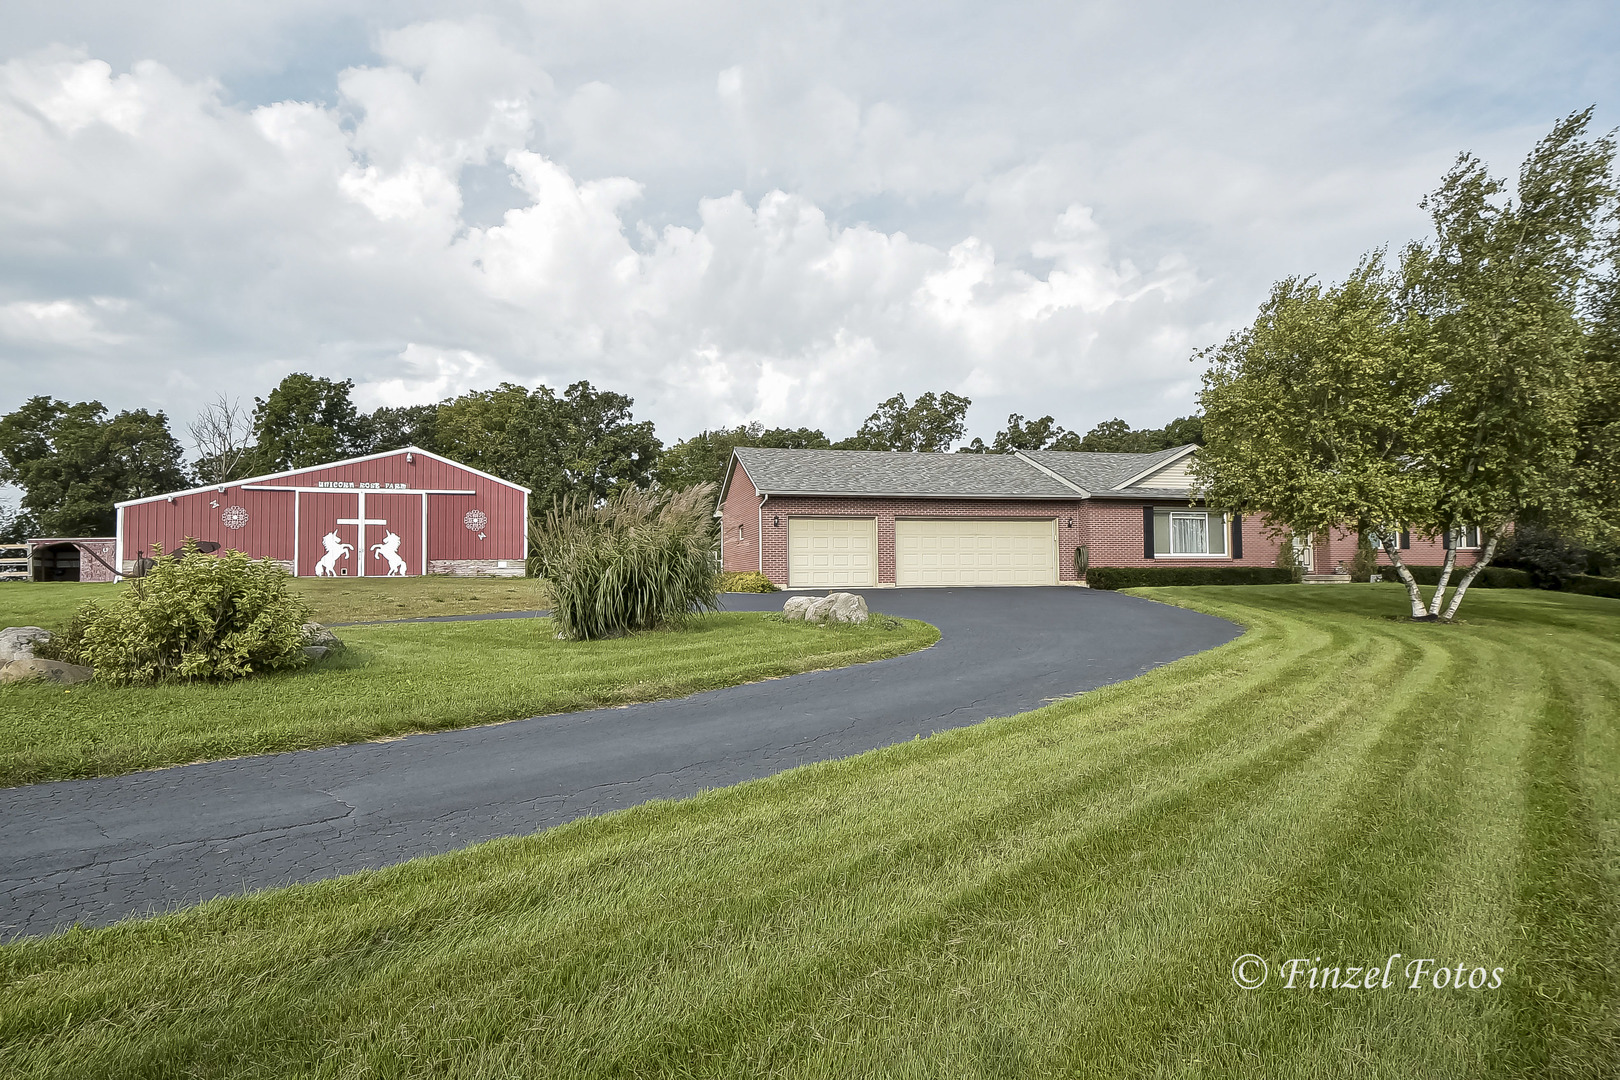 1513 Deerpass, Marengo, Illinois, 60152